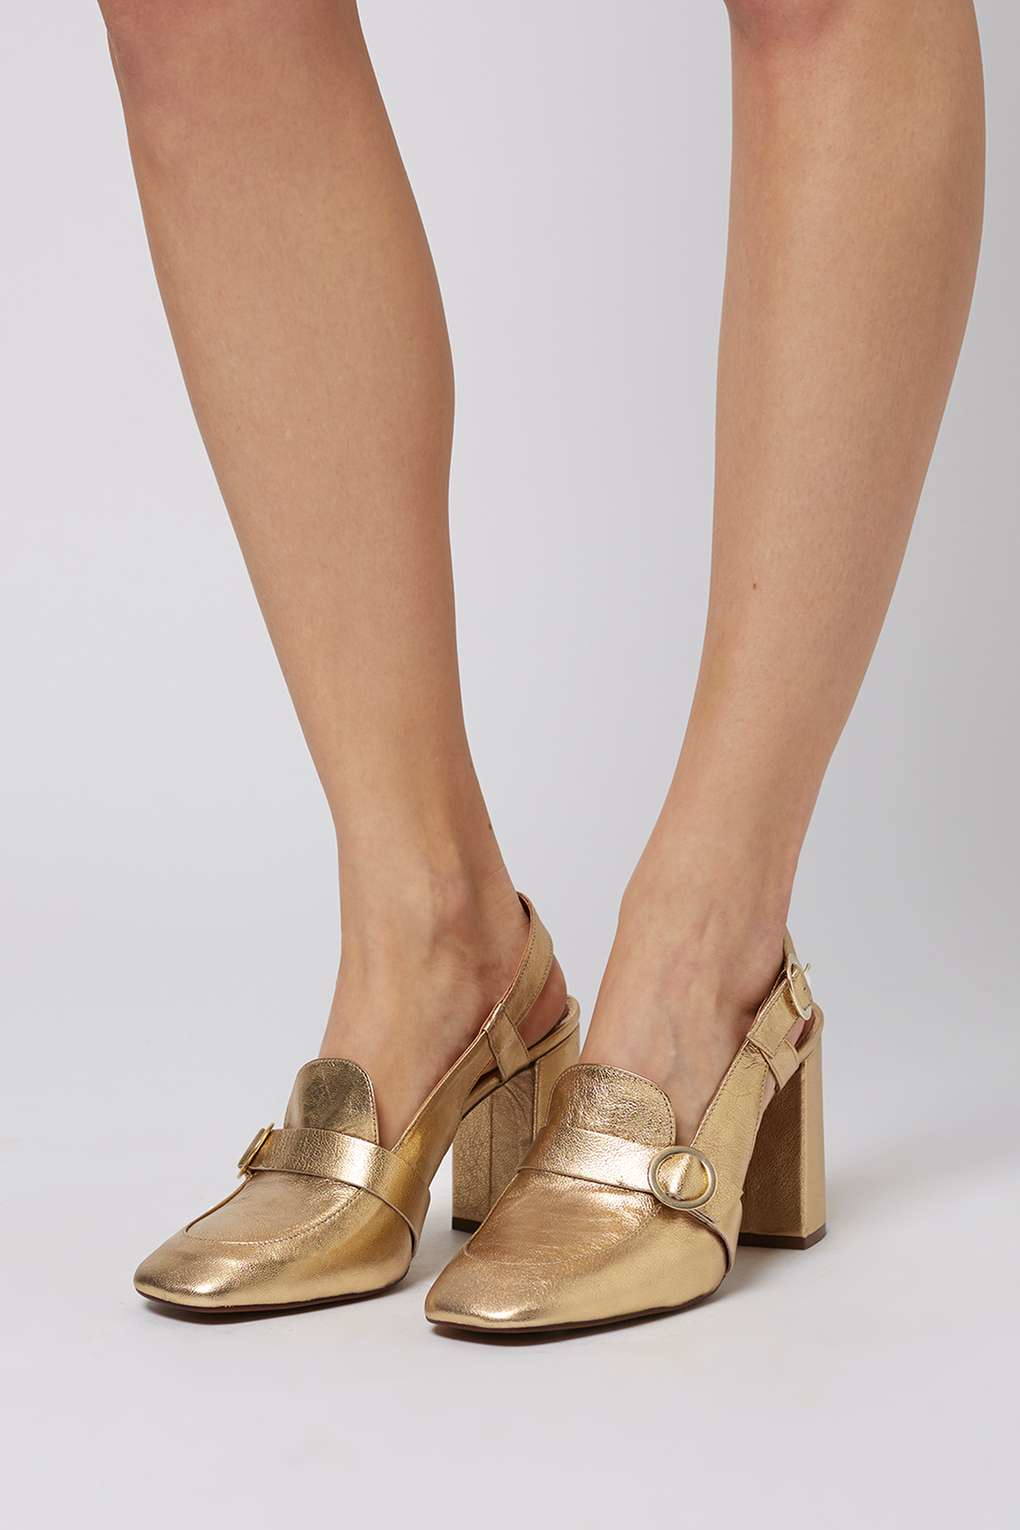 Lyst Topshop Gina Slingback Shoes In Metallic